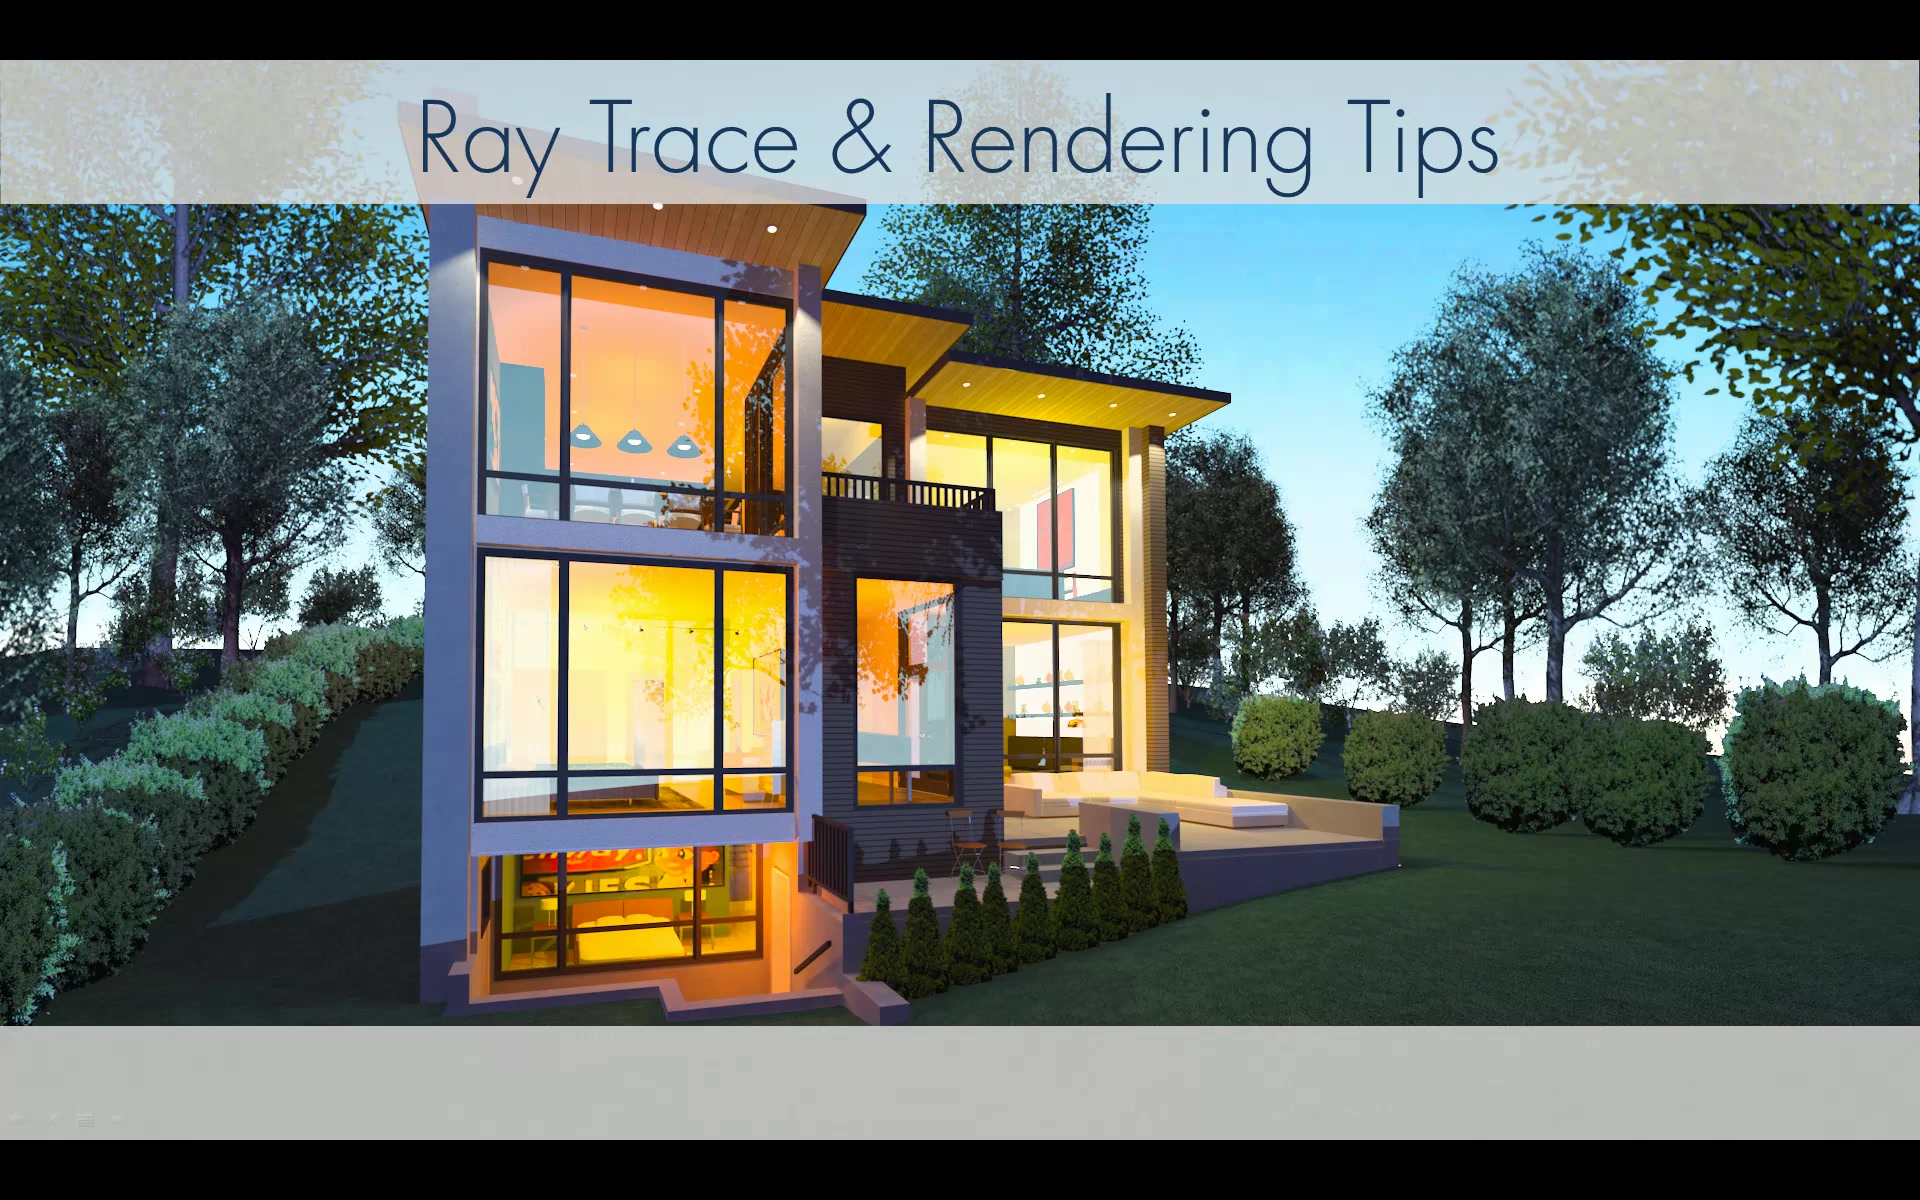 Ray Trace & Rendering - Introduction